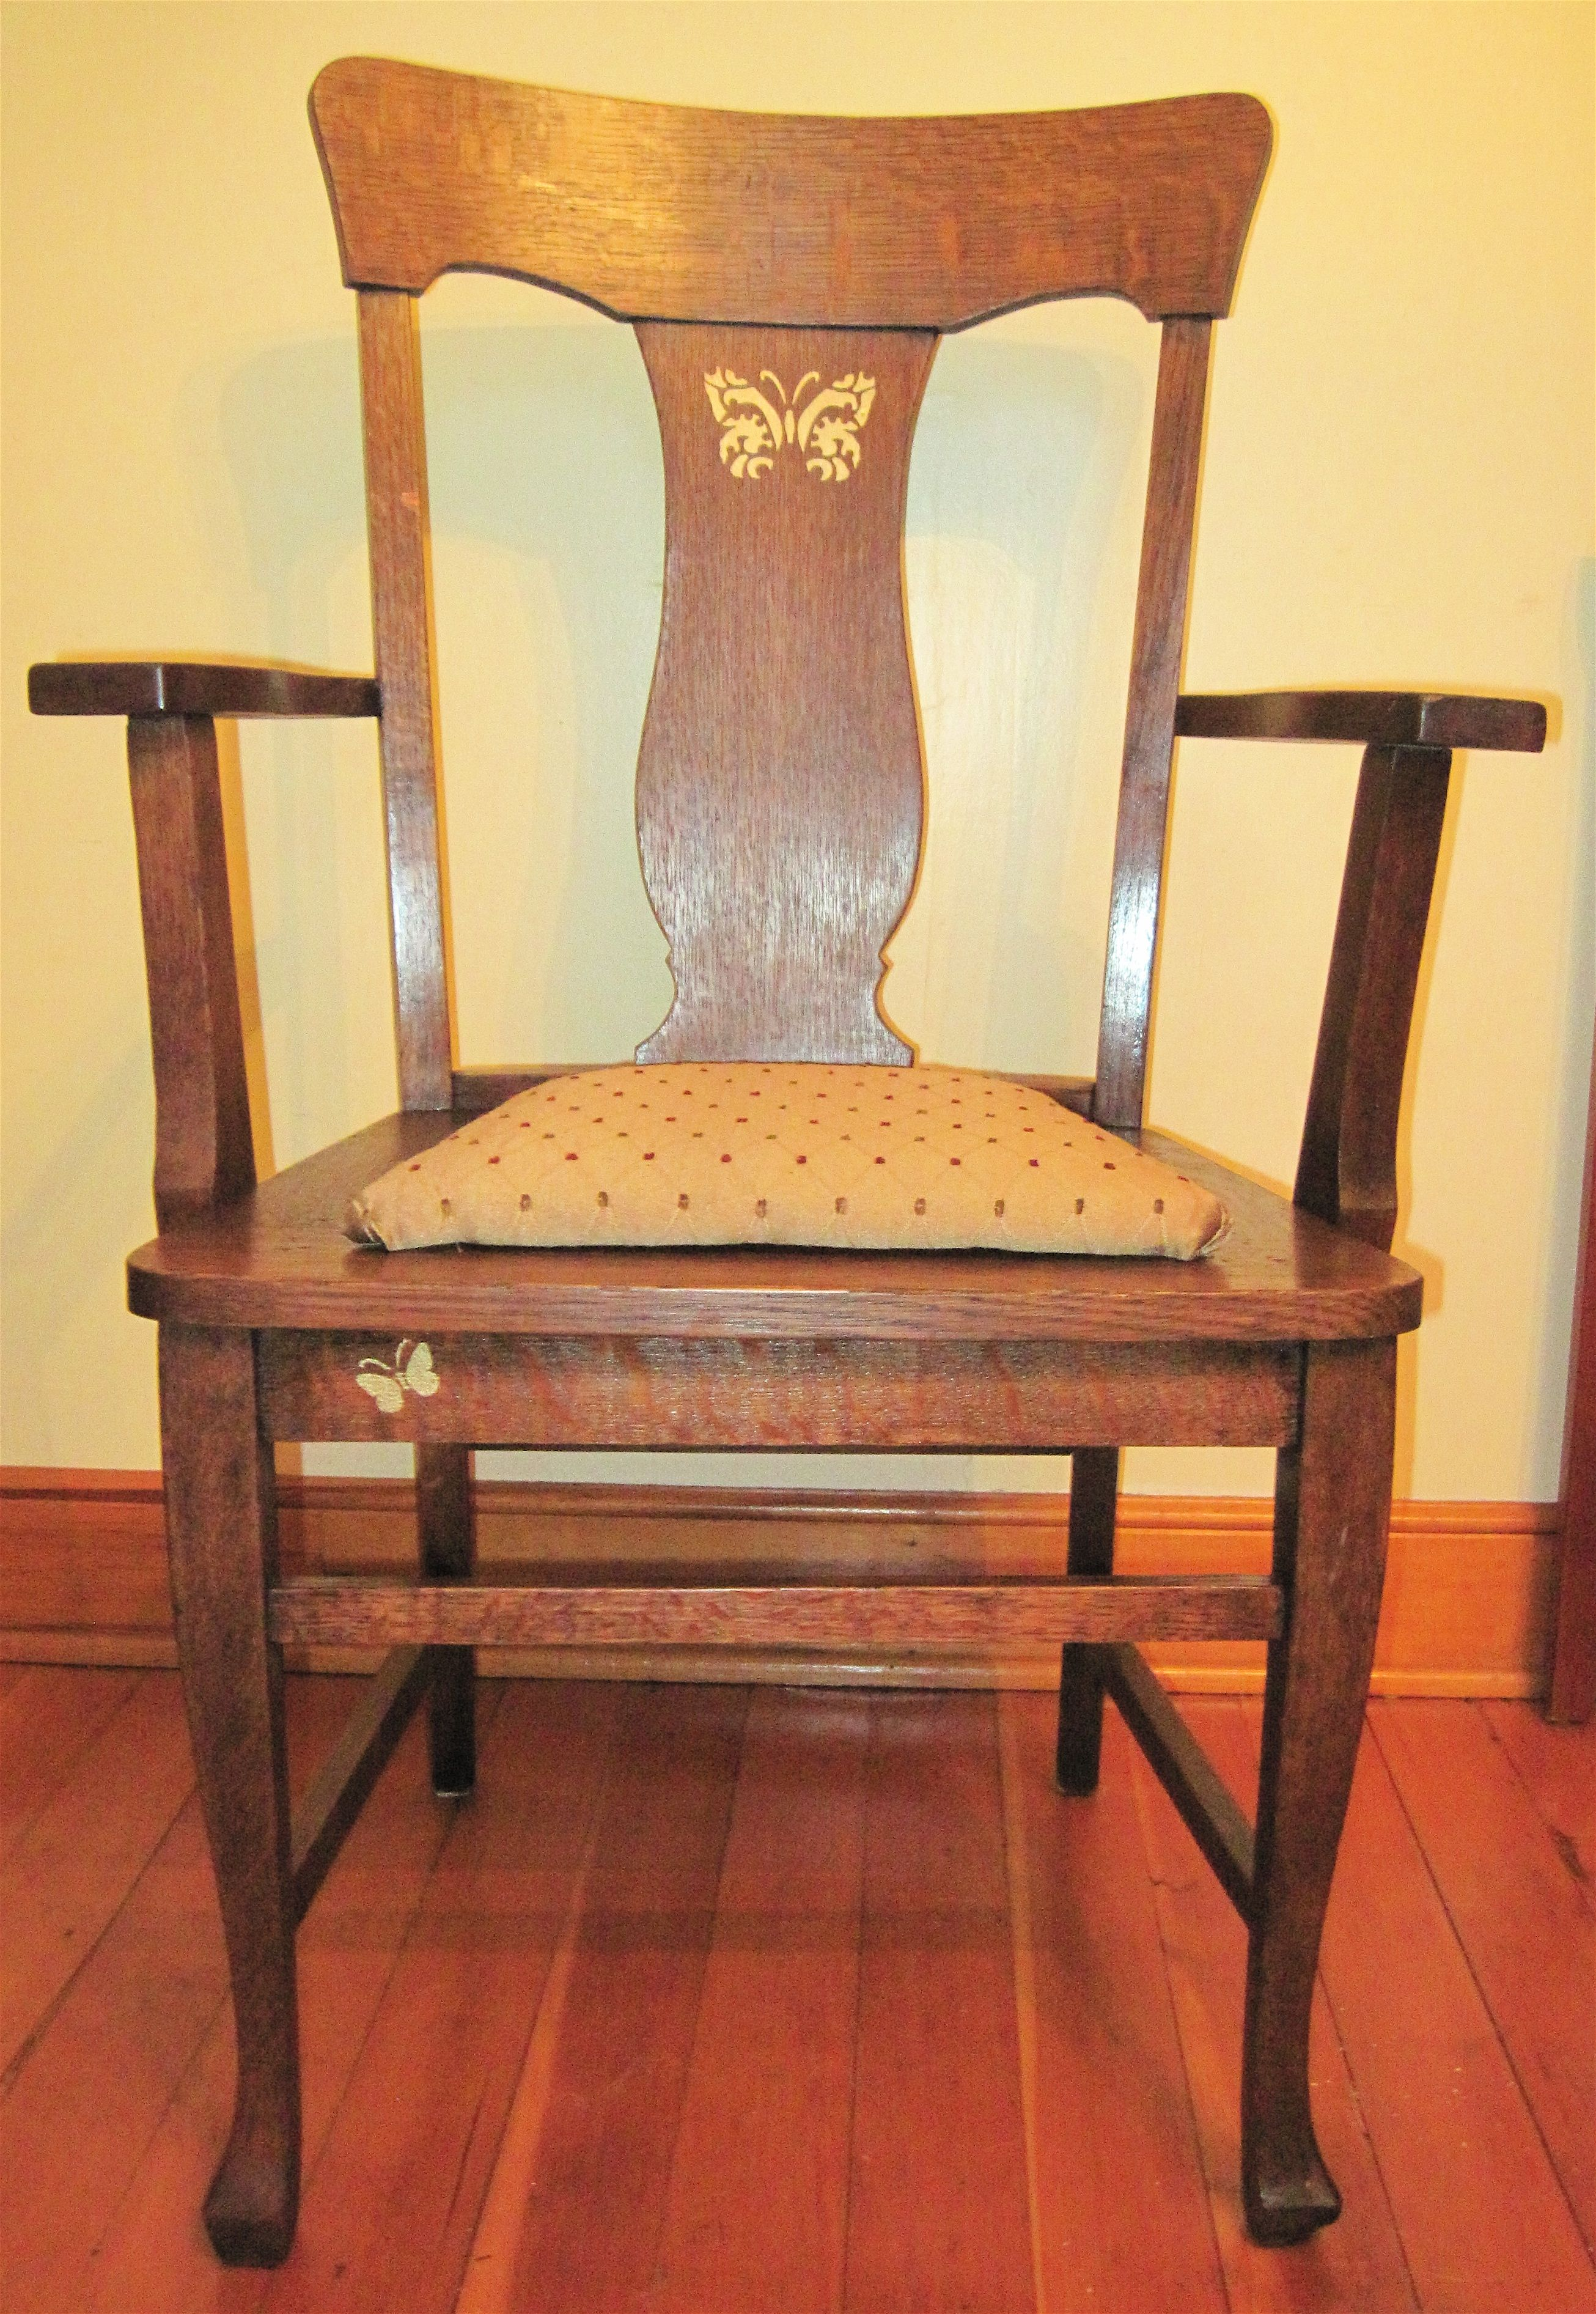 Refinished large old oak armchair.  New satiny fabric, and small, elegant golden butterflies stenciled on each  side.  This is a large, sturdy and beautiful chair.  For sale for $99.